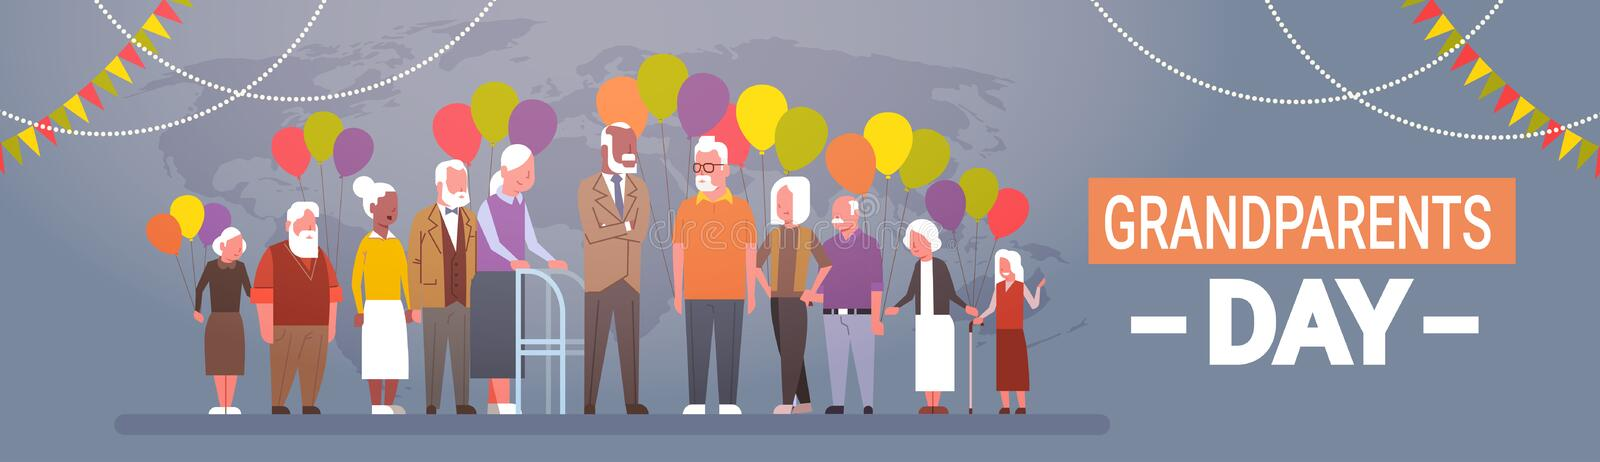 Happy Grandparents Day Greeting Card Banner Mix Race Group Of Senior People Celebration. Vector Illustration royalty free illustration